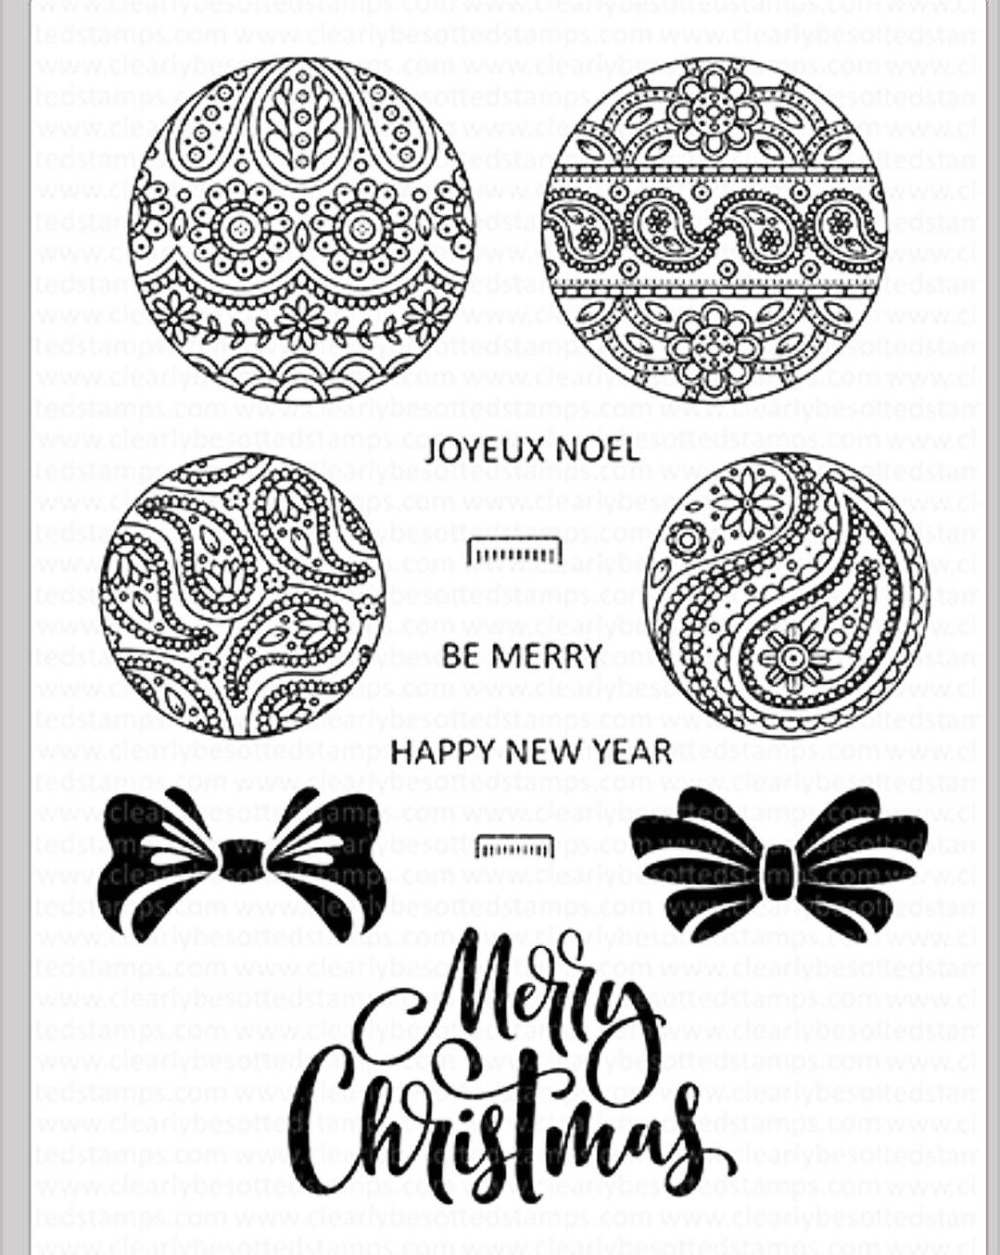 happy new yeartransparent clear stamps for diy scrapbookingcard makingkids christmas fun decoration supplies